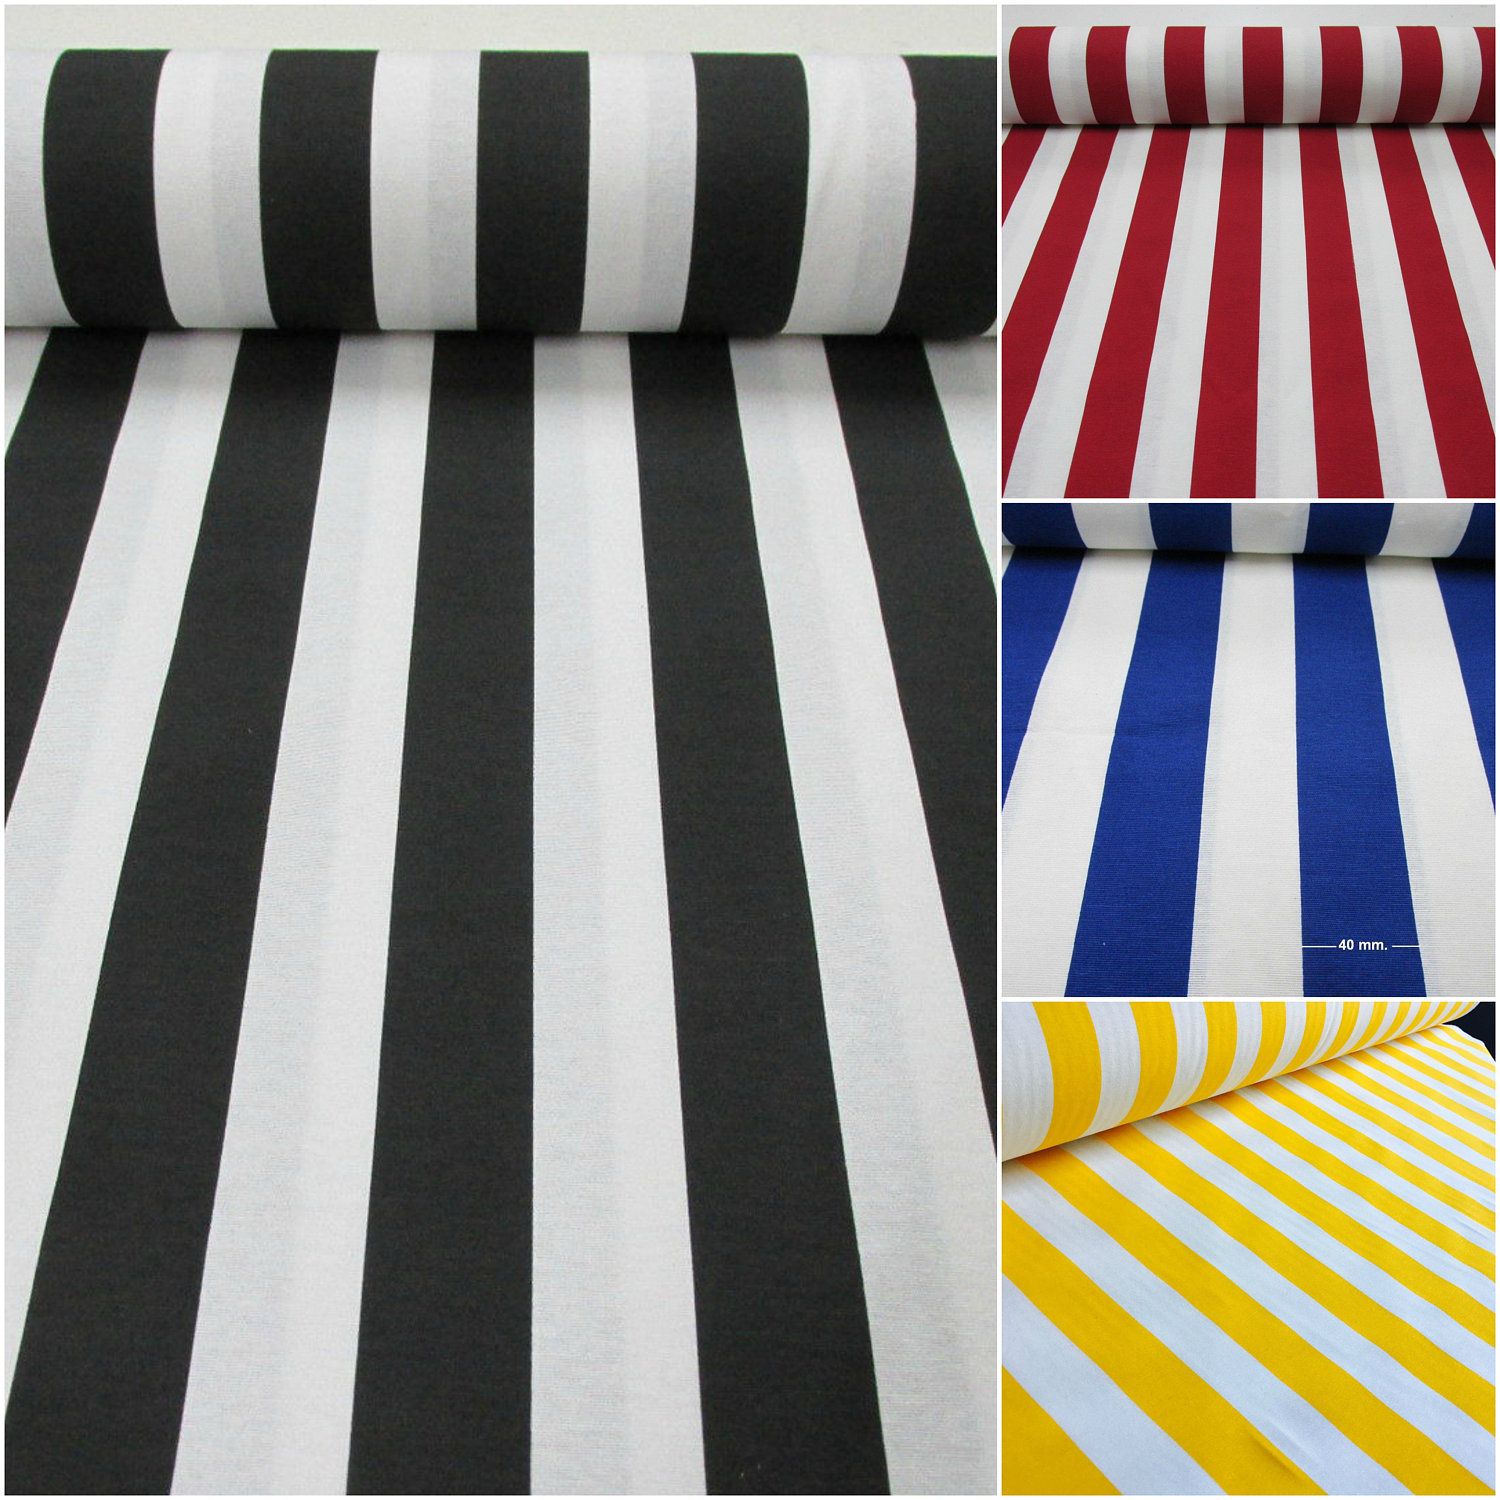 white-striped-fabric-stripes-curtain-upholstery-material-280cm-wide-5-colours-yellow-red-black-khaki-and-blue-594bebd61.jpg